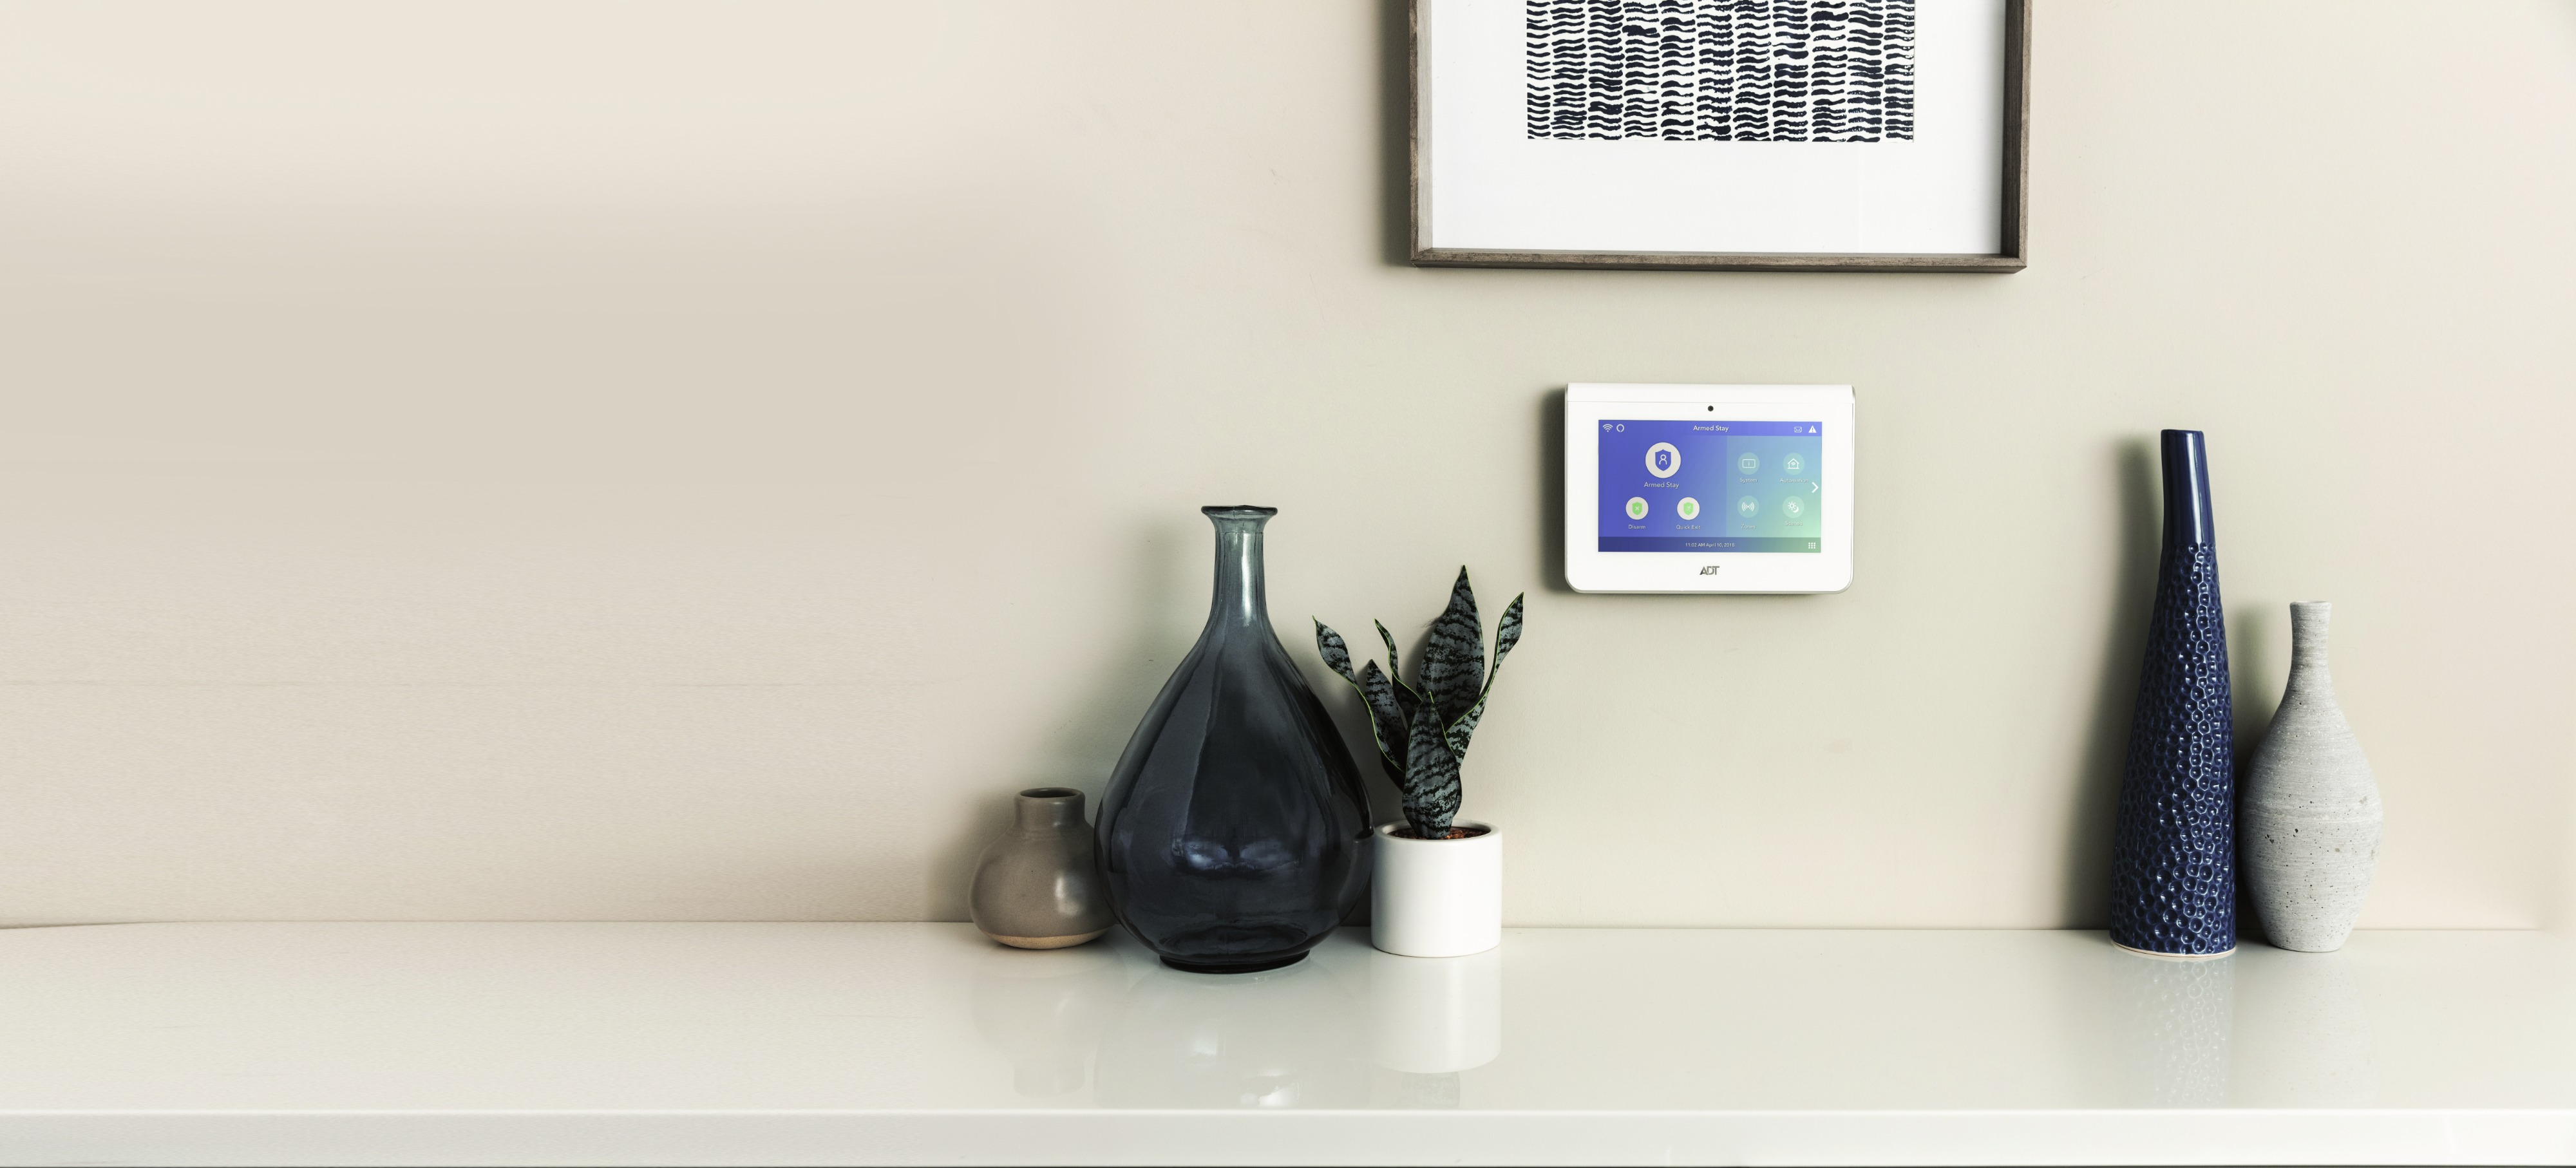 An ADT security system on the wall of a home with a vase, plant, and framed decorative print surrounding it.